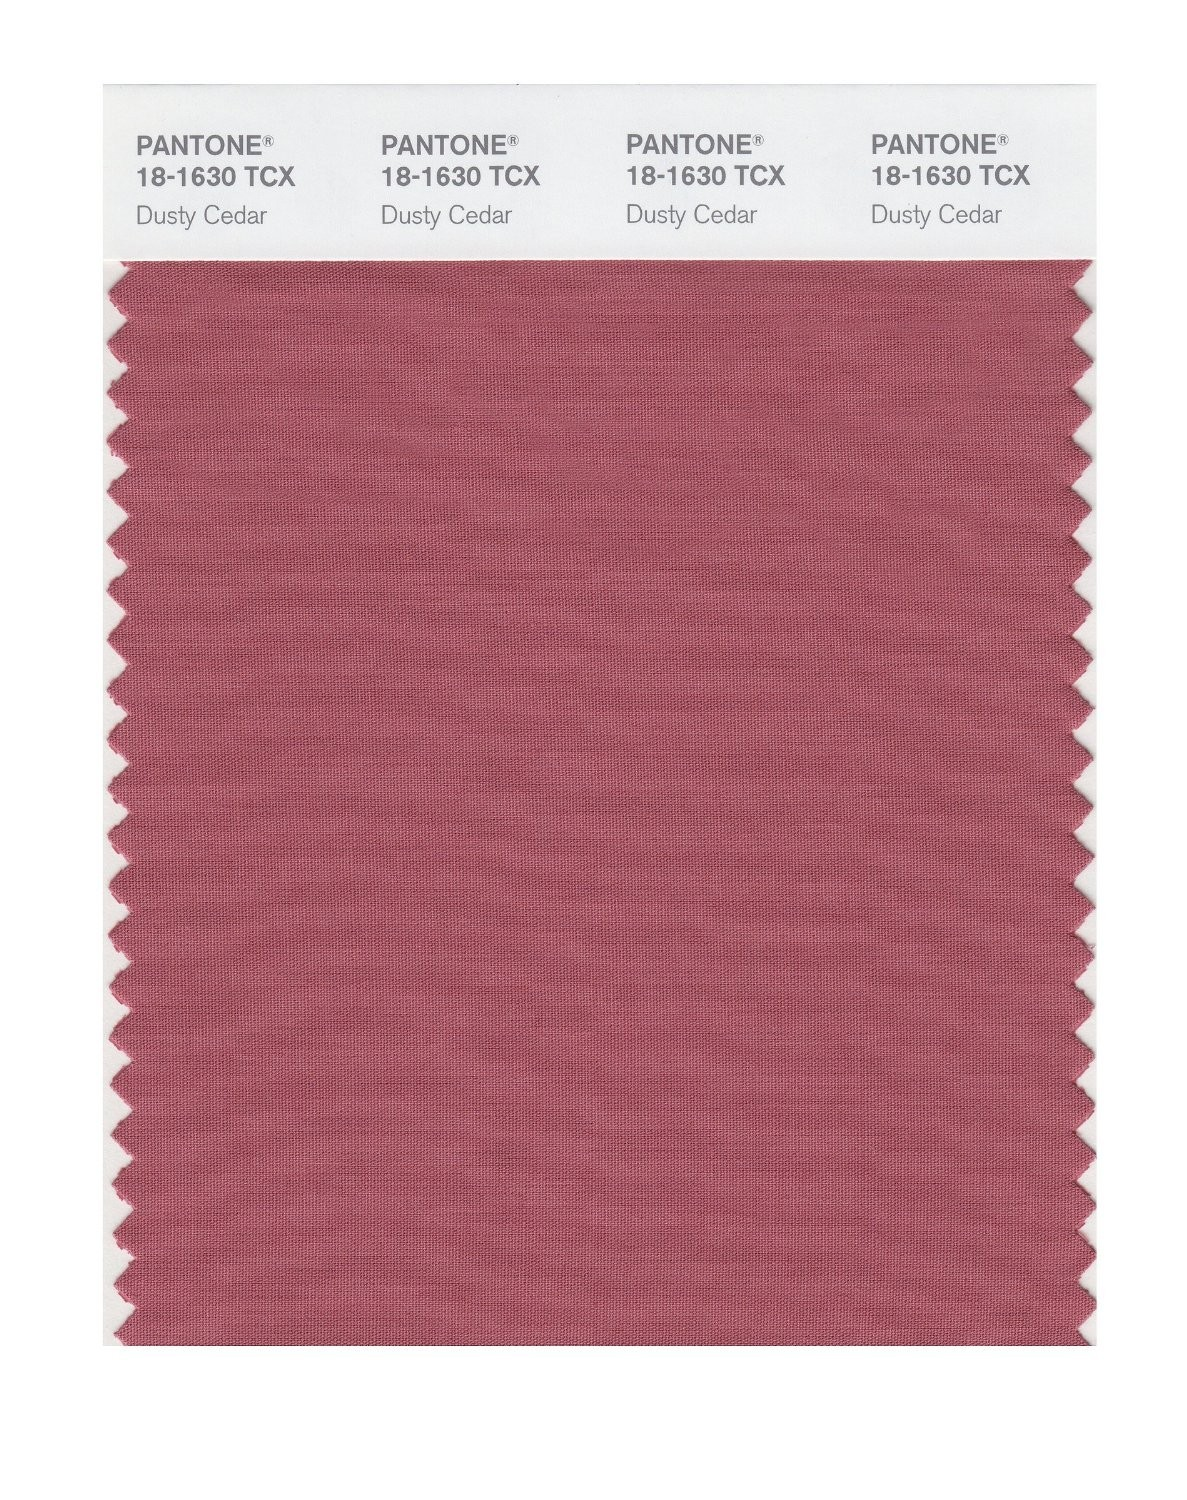 Pantone 18-1630 TCX Swatch Card Dusty Cedar